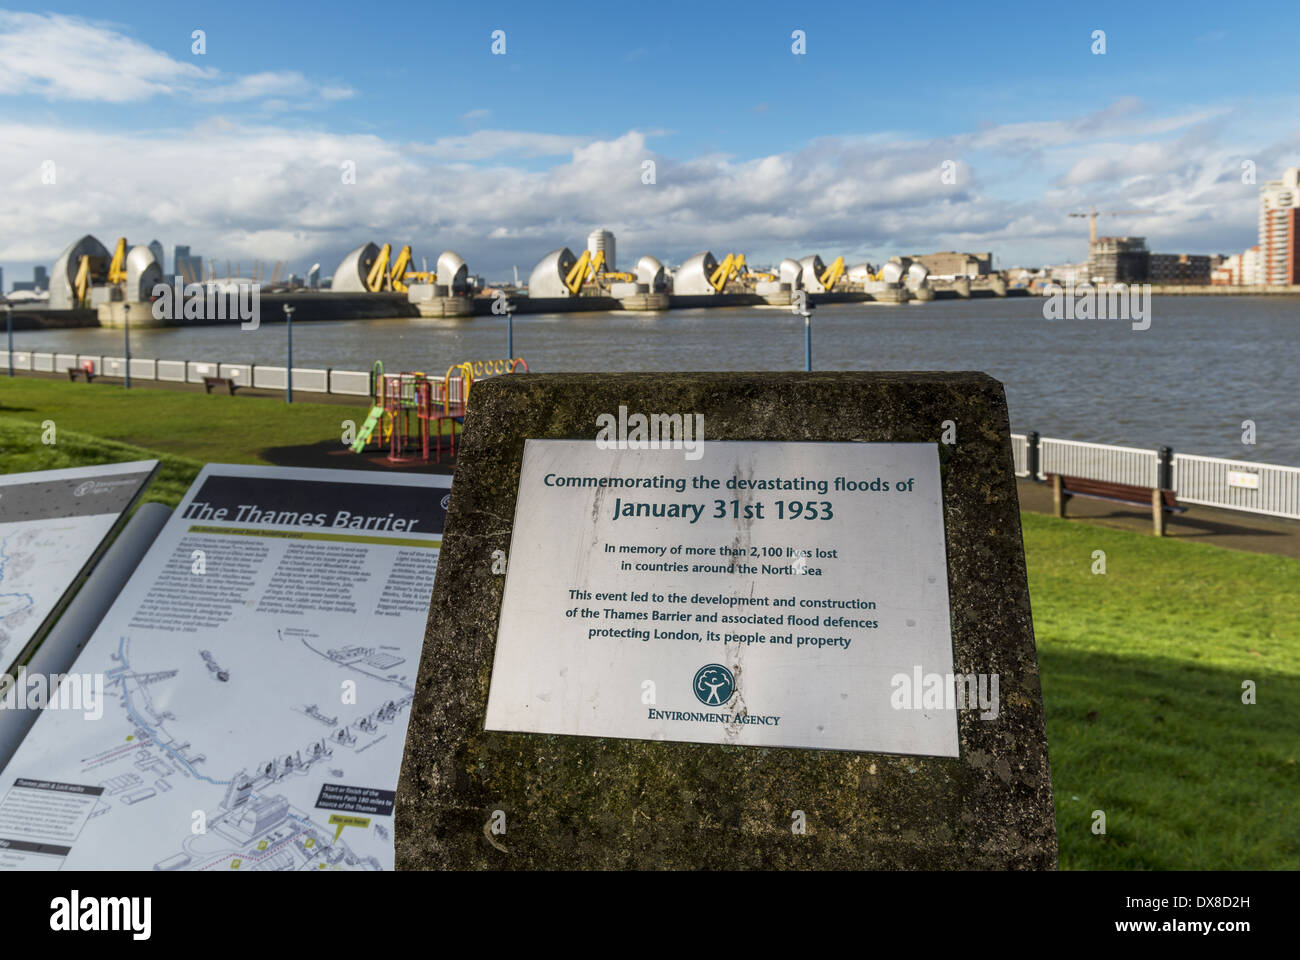 Memorial commemorating the davasting floods of January 31st 1953, the event that led to the development and construction of the - Stock Image